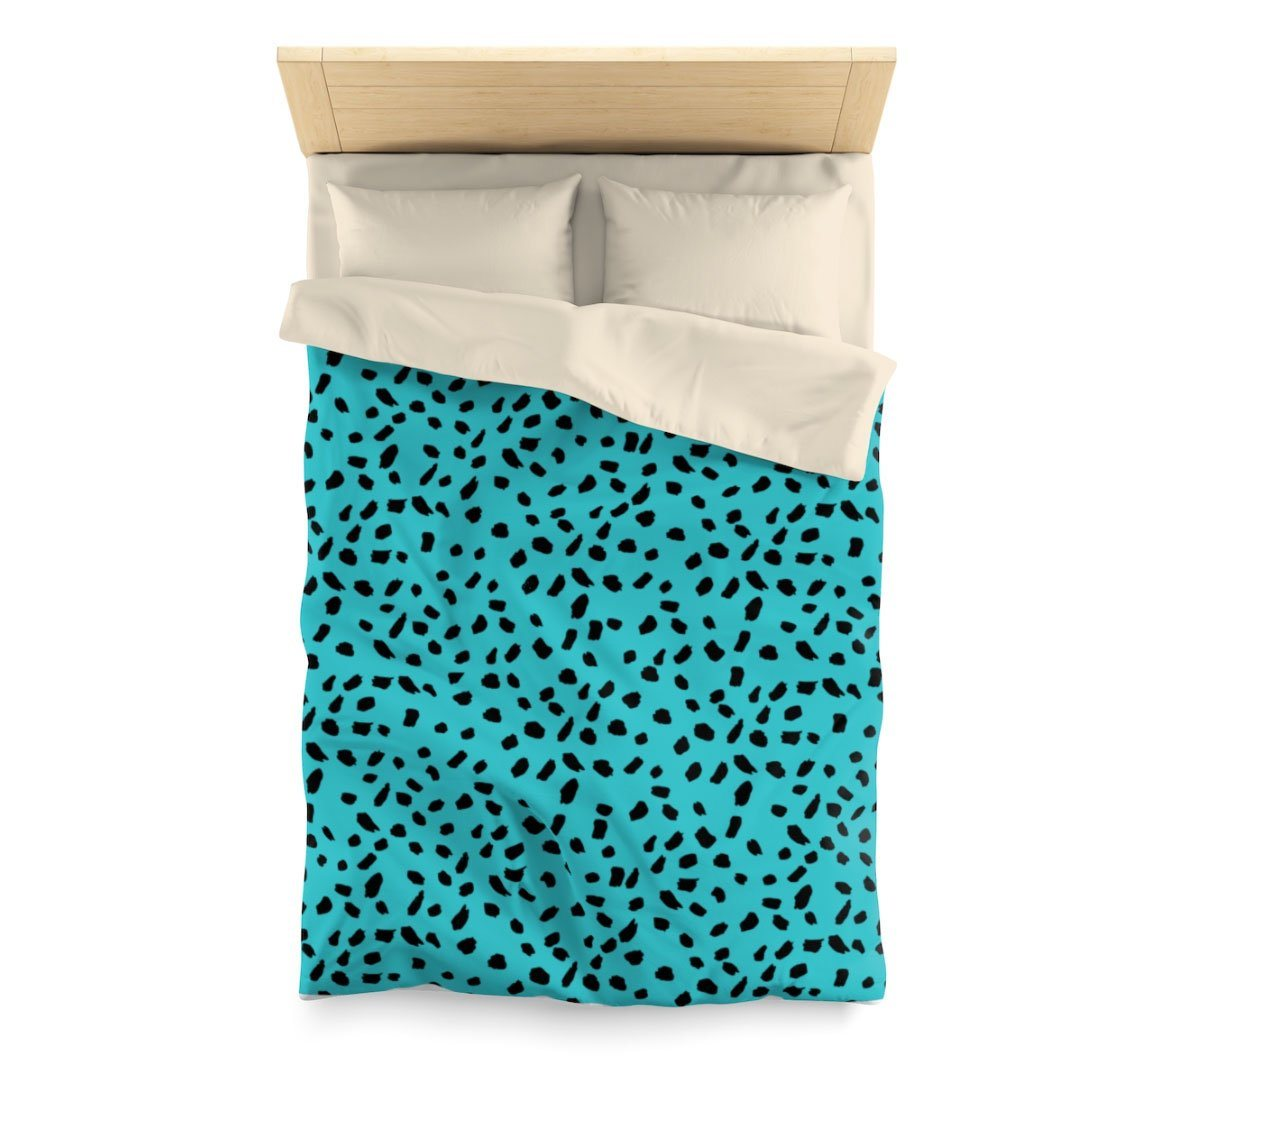 Leopard Duvet Cover by The Gretest